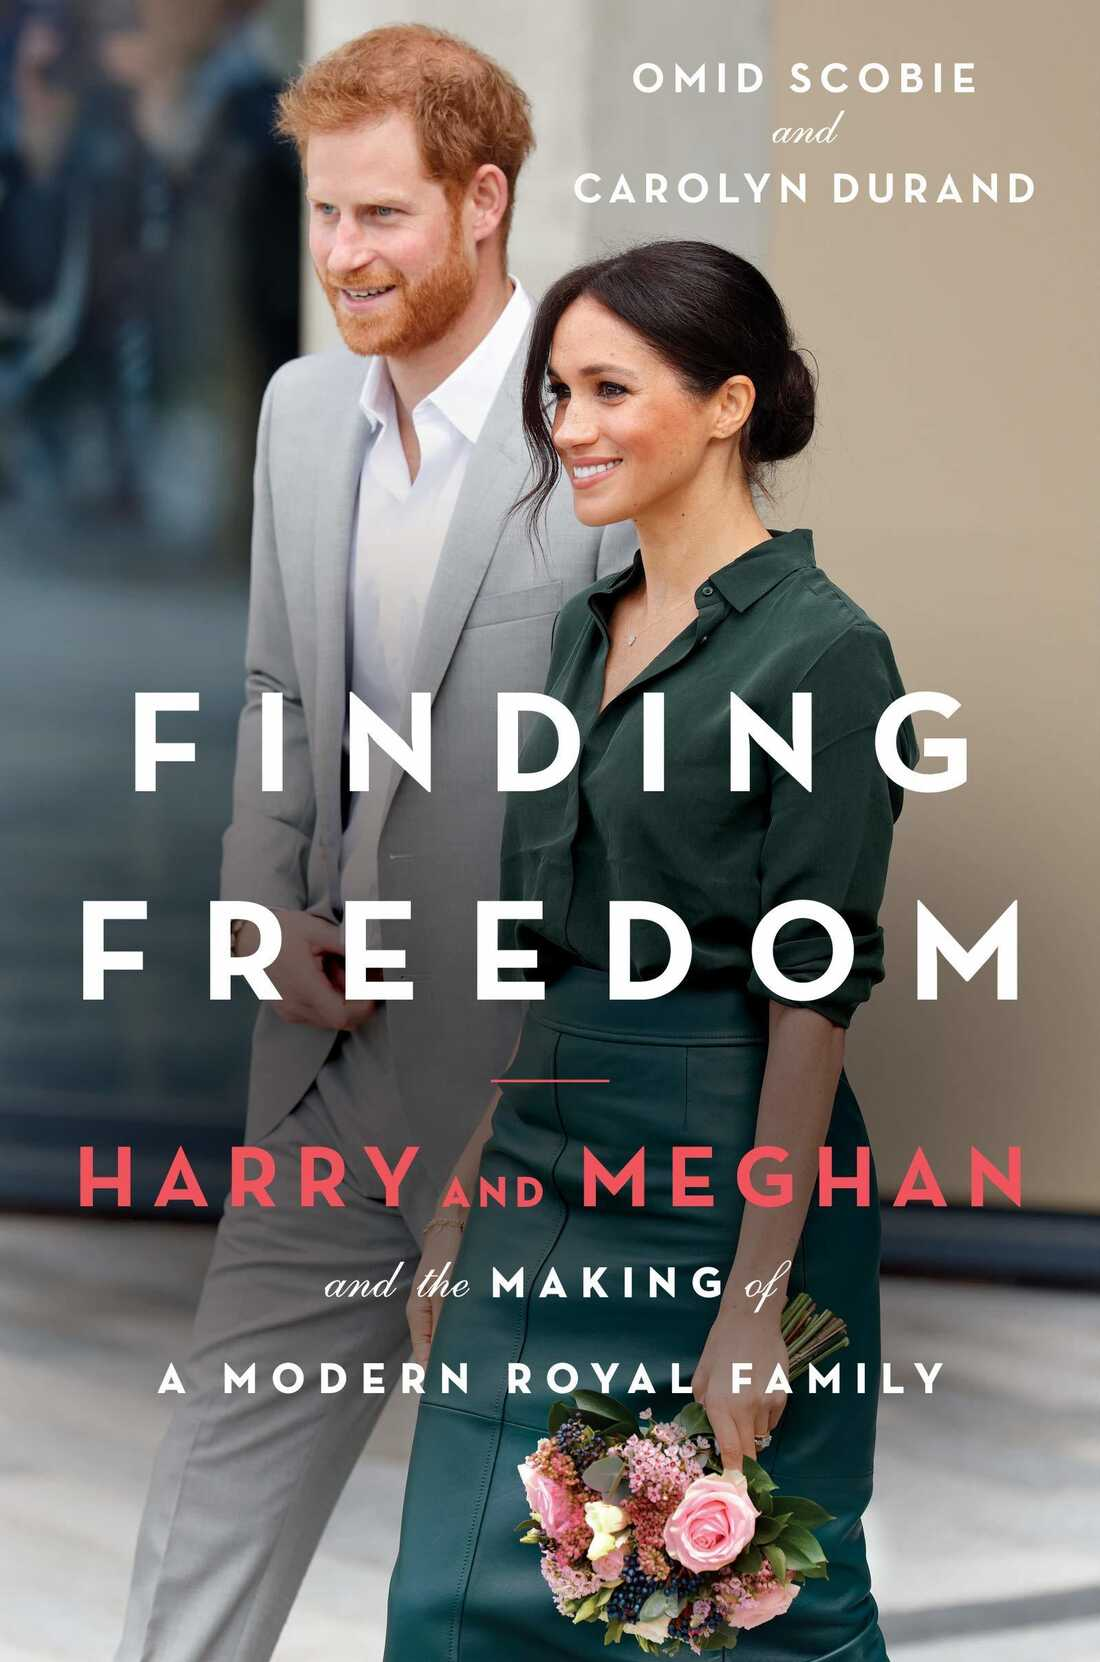 Finding Freedom by Omid Scobie and Carolyn Durand